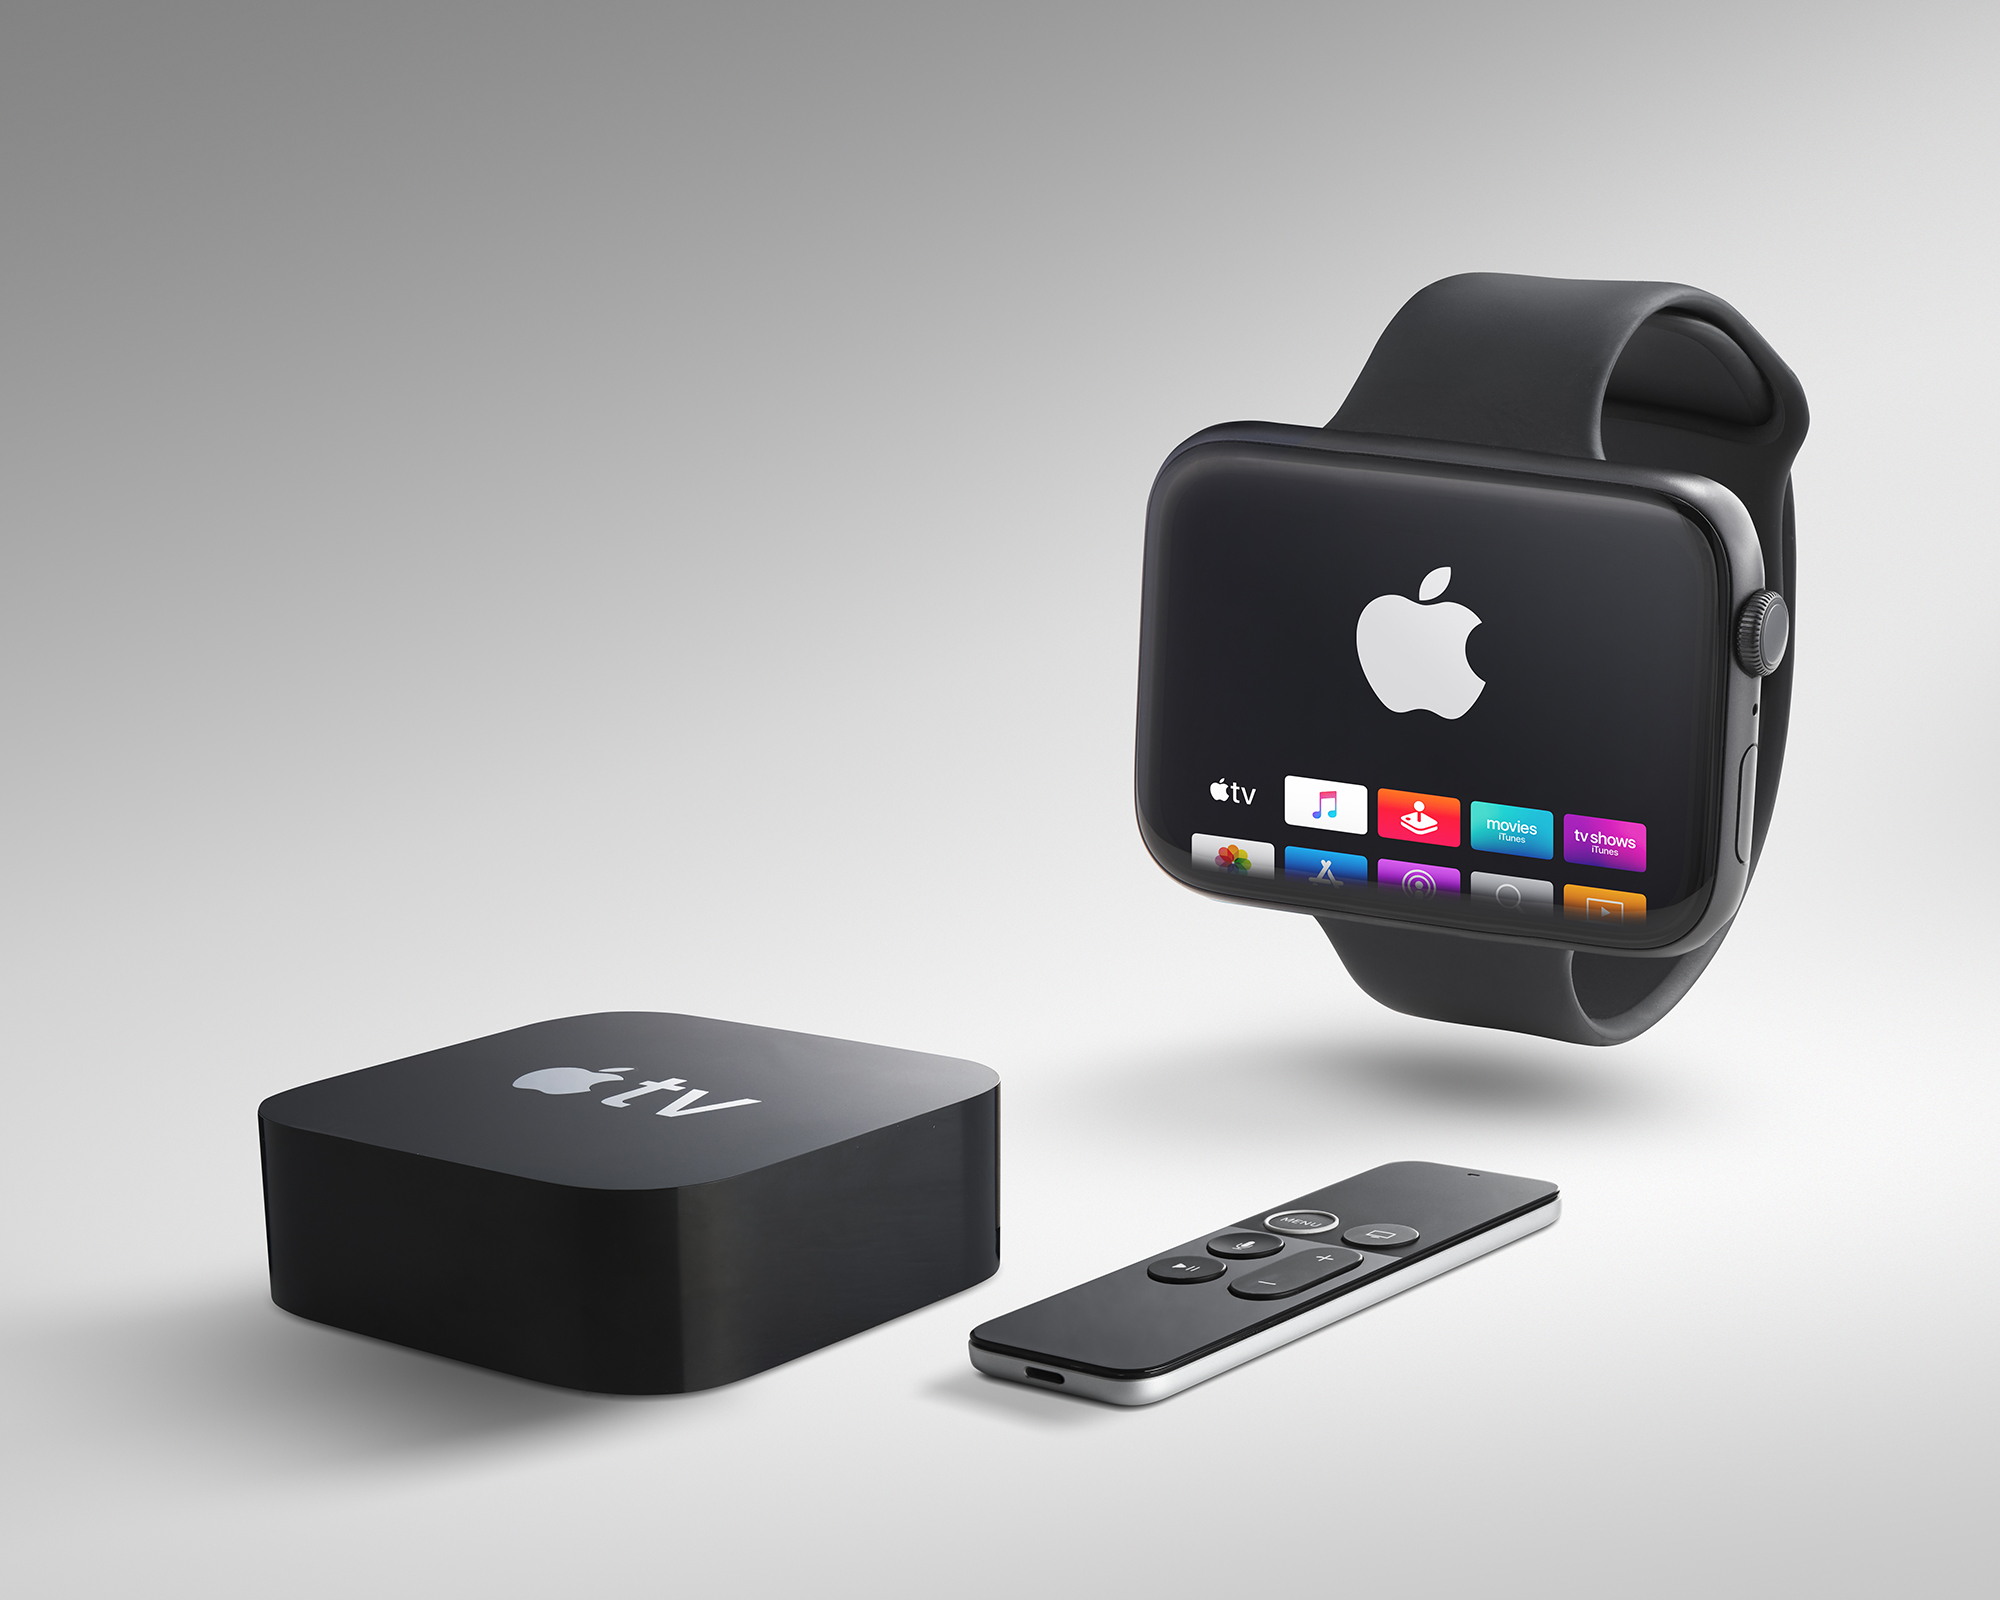 Advertising product image of Apple TV and watch by photographer Ian Knaggs